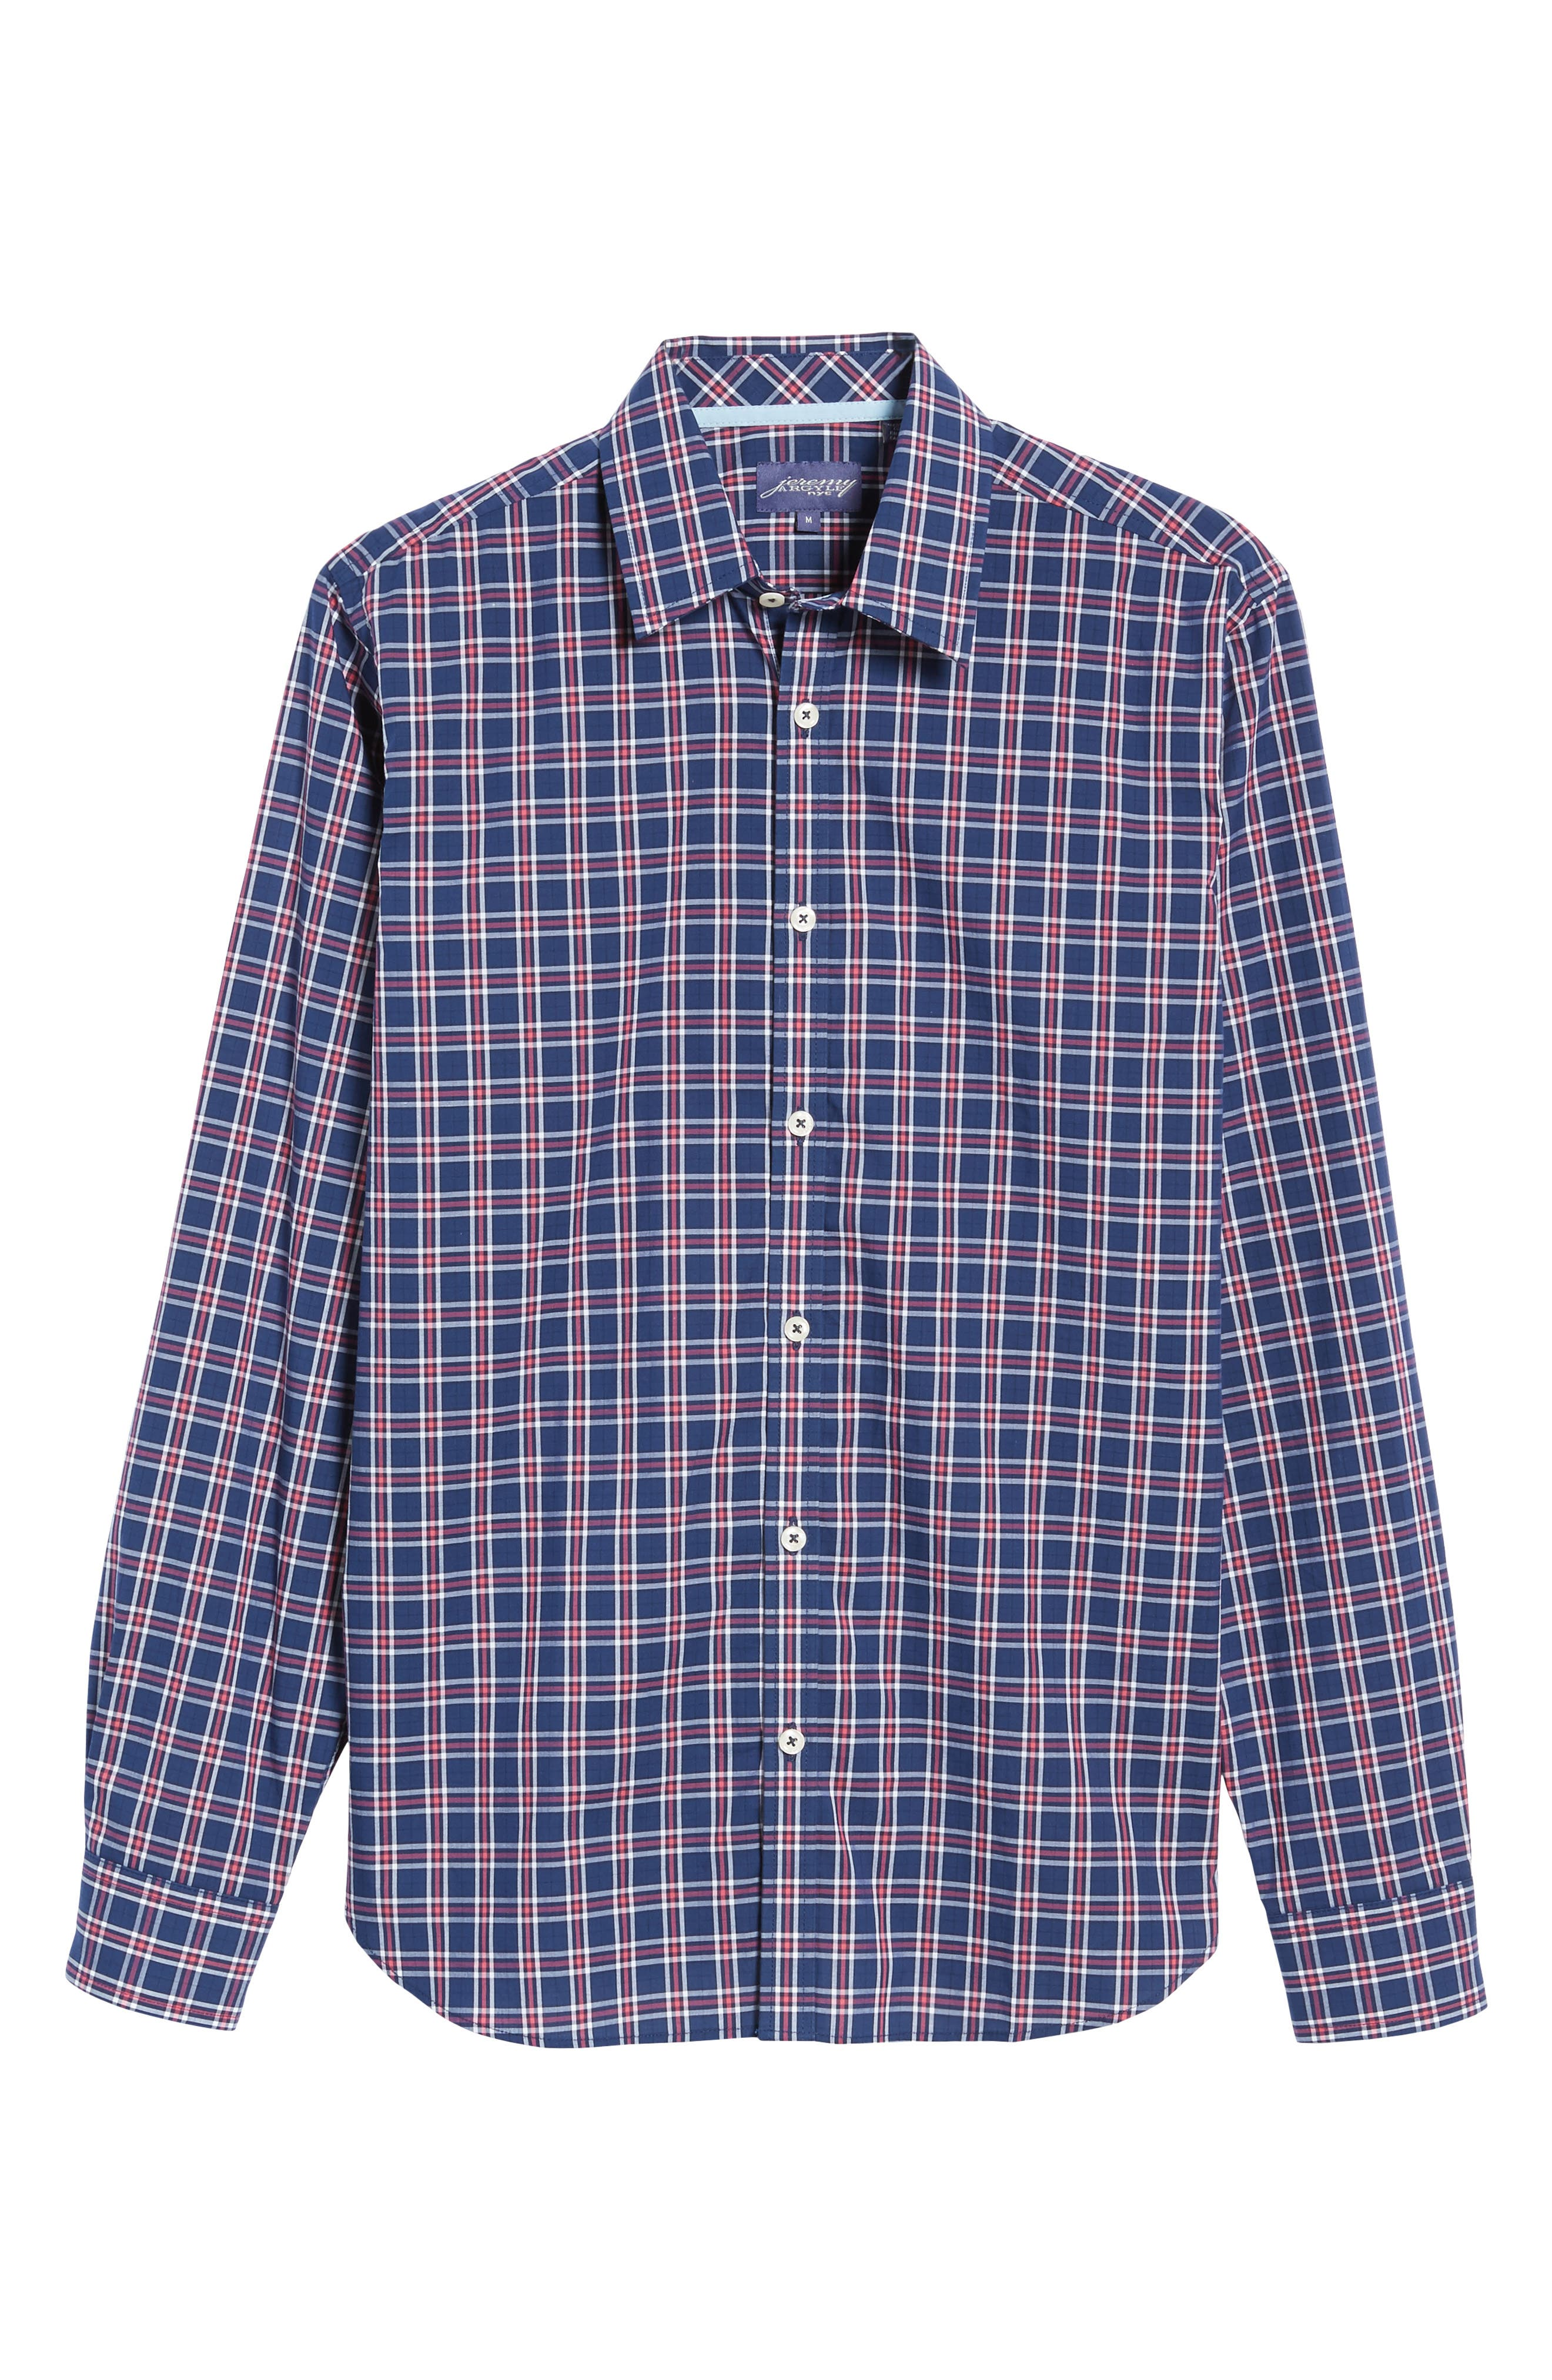 Slim Fit Plaid Sport Shirt,                             Alternate thumbnail 6, color,                             412